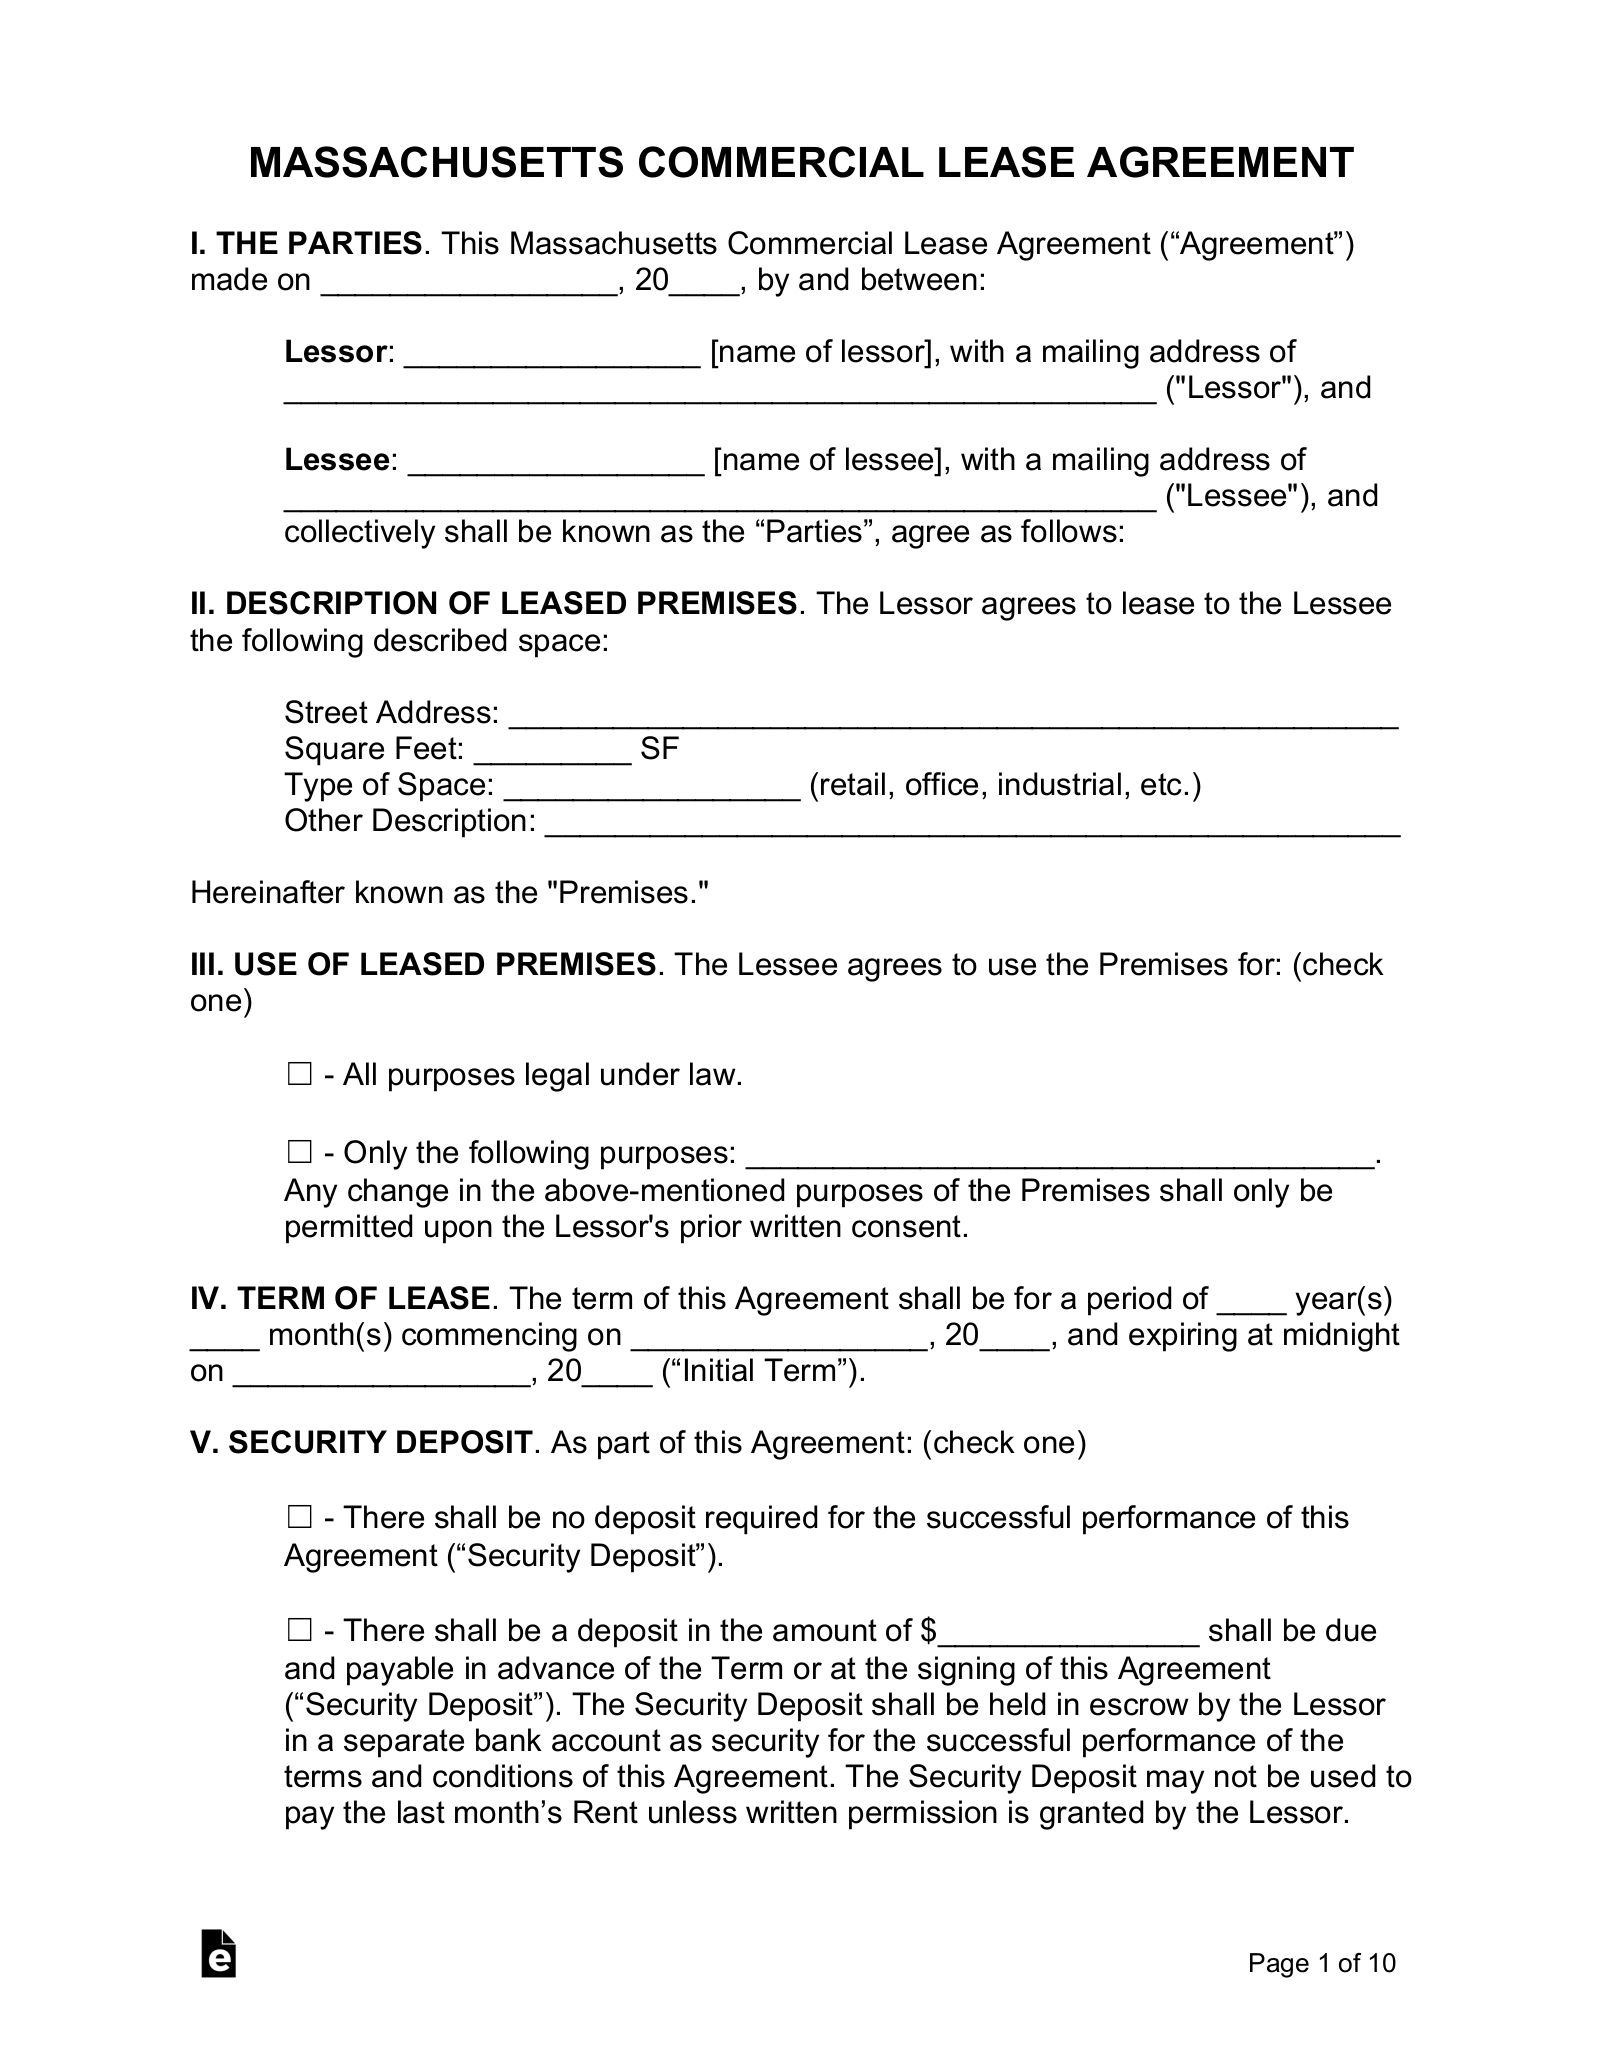 Free Massachusetts Commercial Lease Agreement Template - PDF